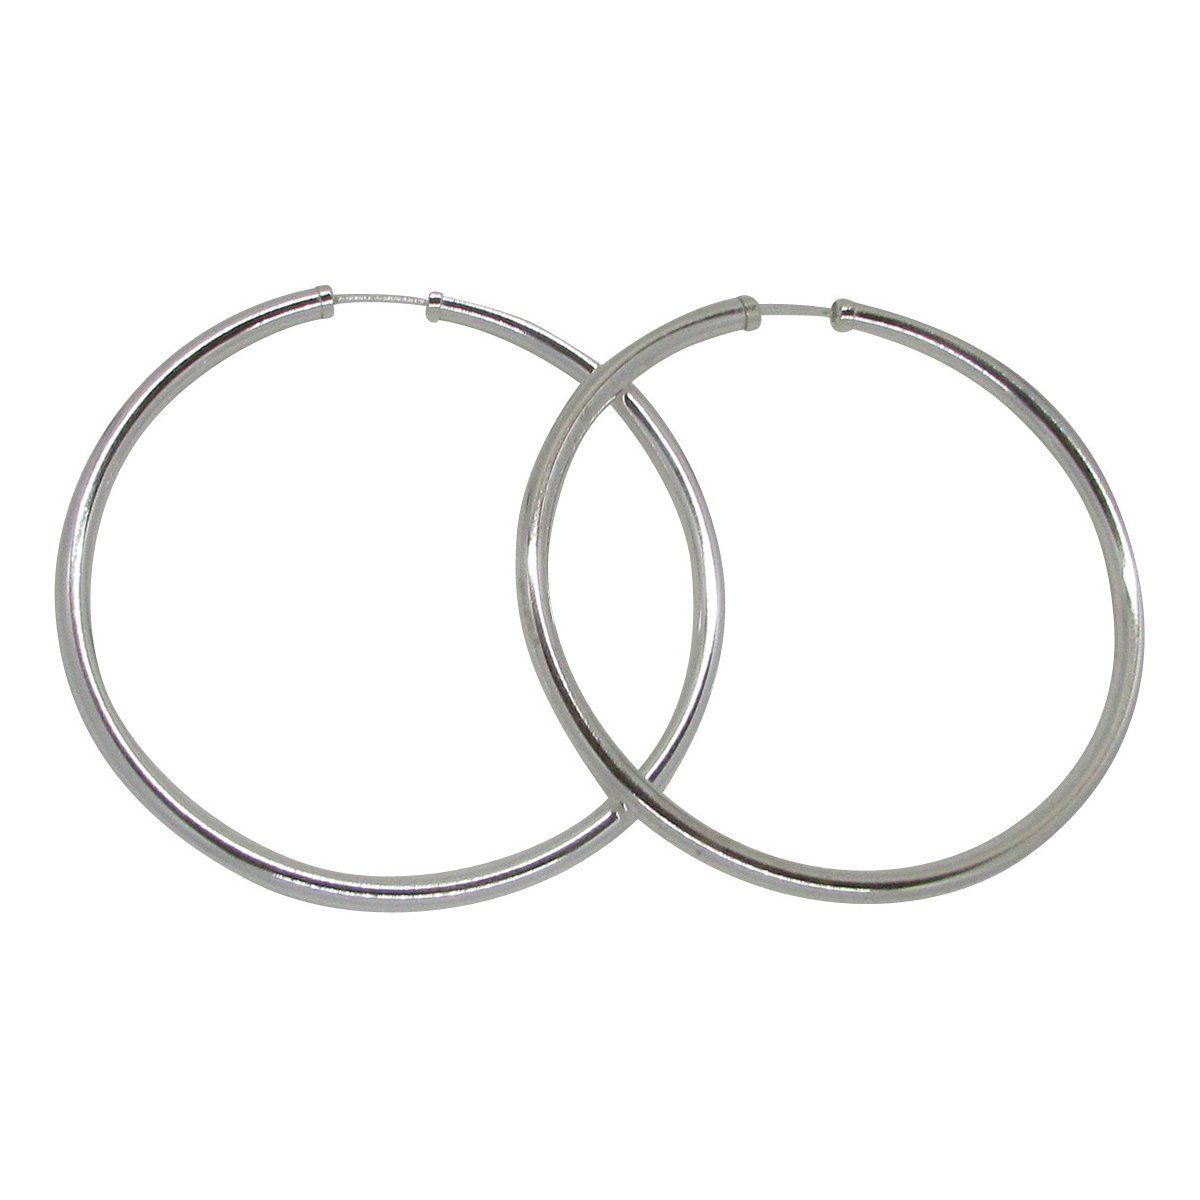 Sterling Silver Thick Endless Continuous Hoop Earrings, 25mm  83mm (4mm  Tube) (